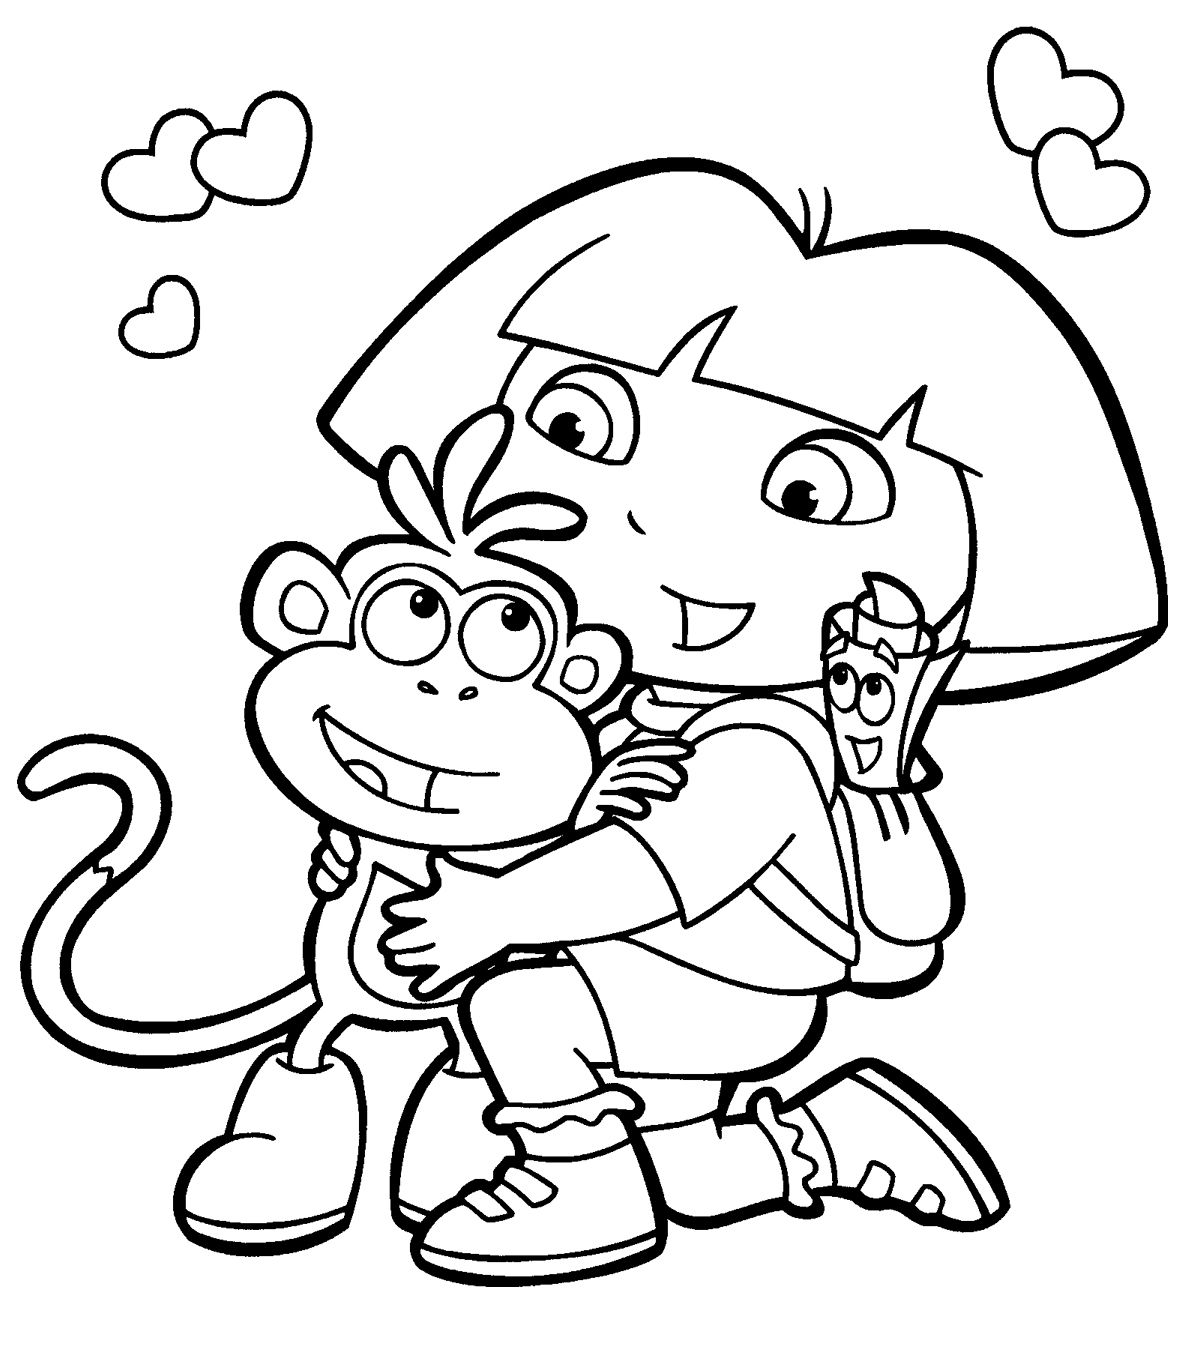 Kids coloring book pages free - Coloring Book Pages Free Nickjr S Dora The Explorer Coloring Book Printables